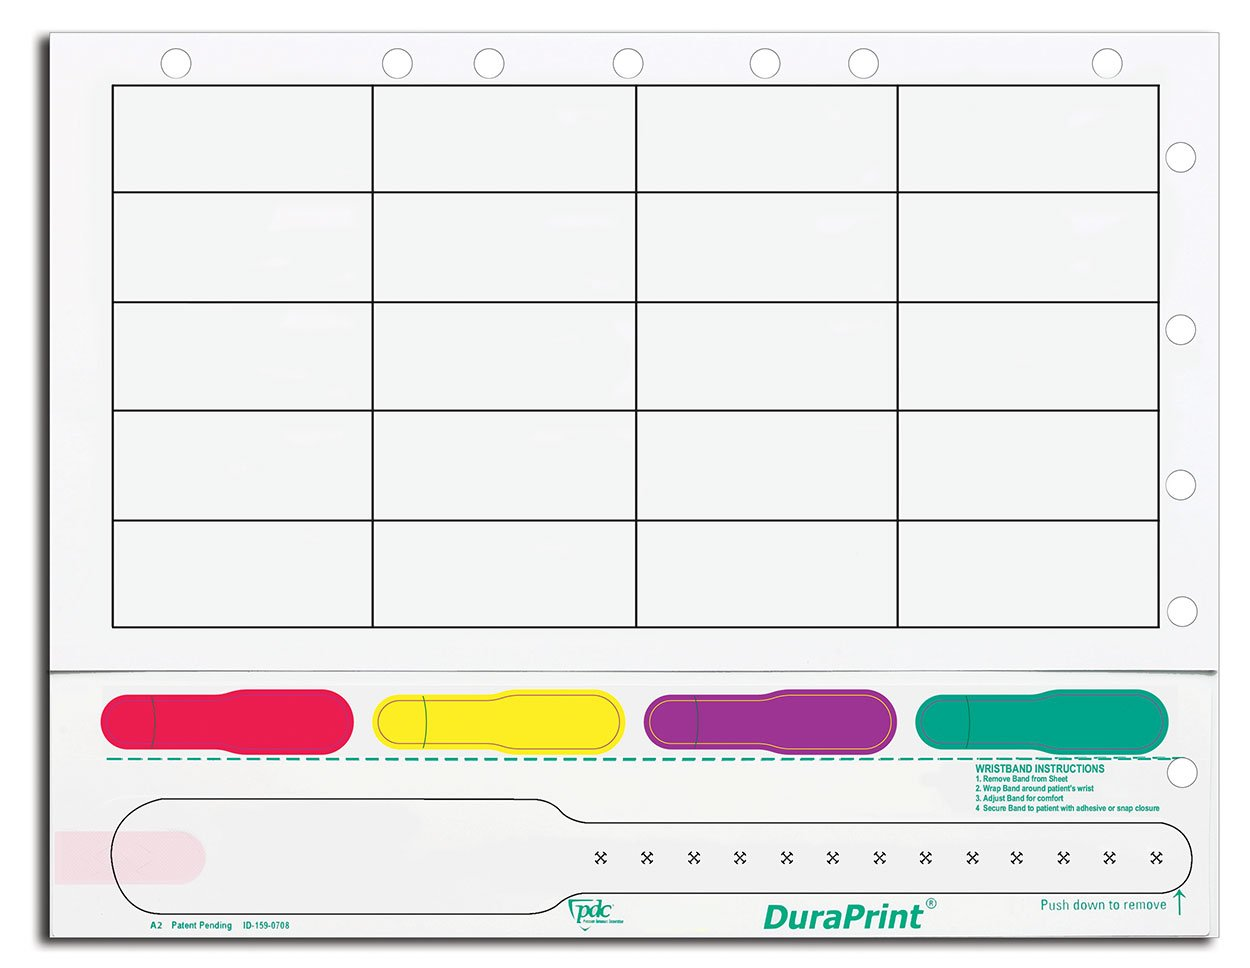 PDC Healthcare DuraPrint 9325-00-PDR Wristband and Label Sheet for Adults, Red/Yellow/Purple/Green (Box of 1000)